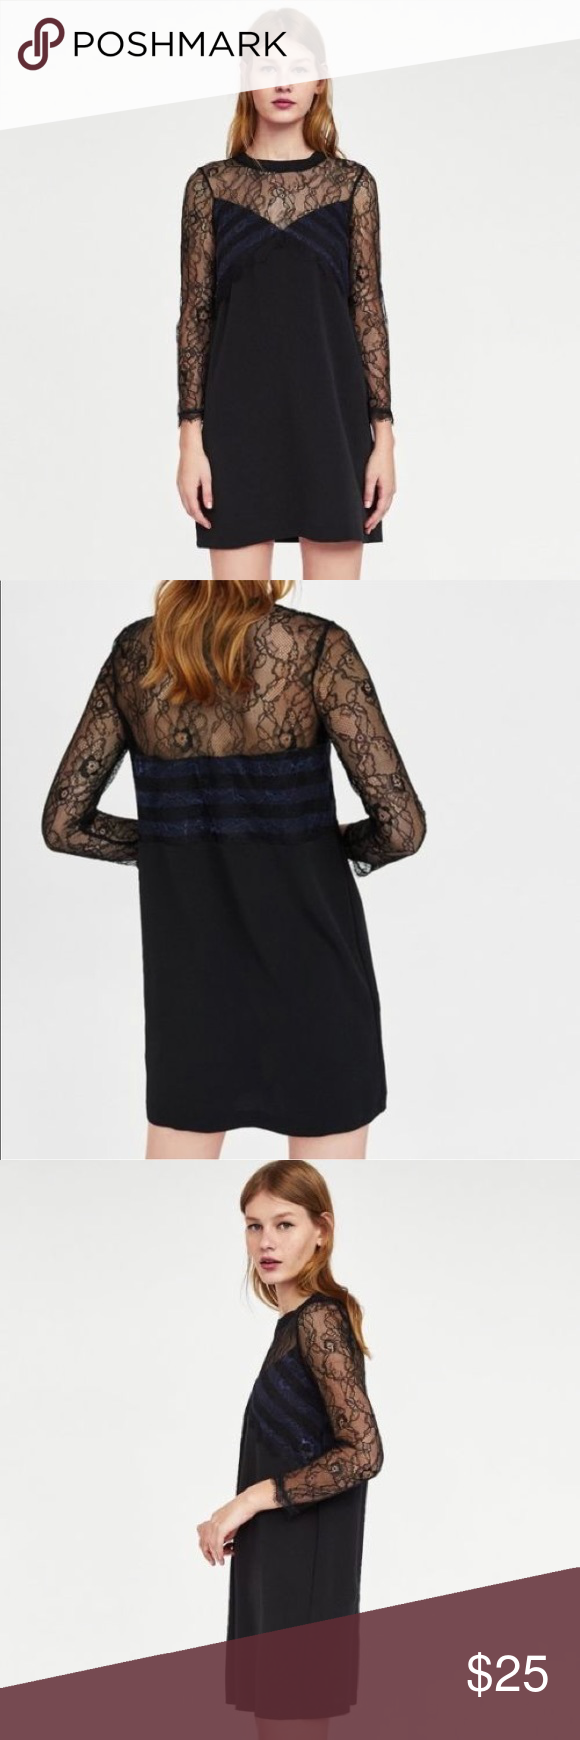 fcb0d8d530 Zara Black Navy Contrast Lace Dress Zara contrast lace sheer floral mini  dress. A-line dress with a ribbed round neckline and long sleeves.